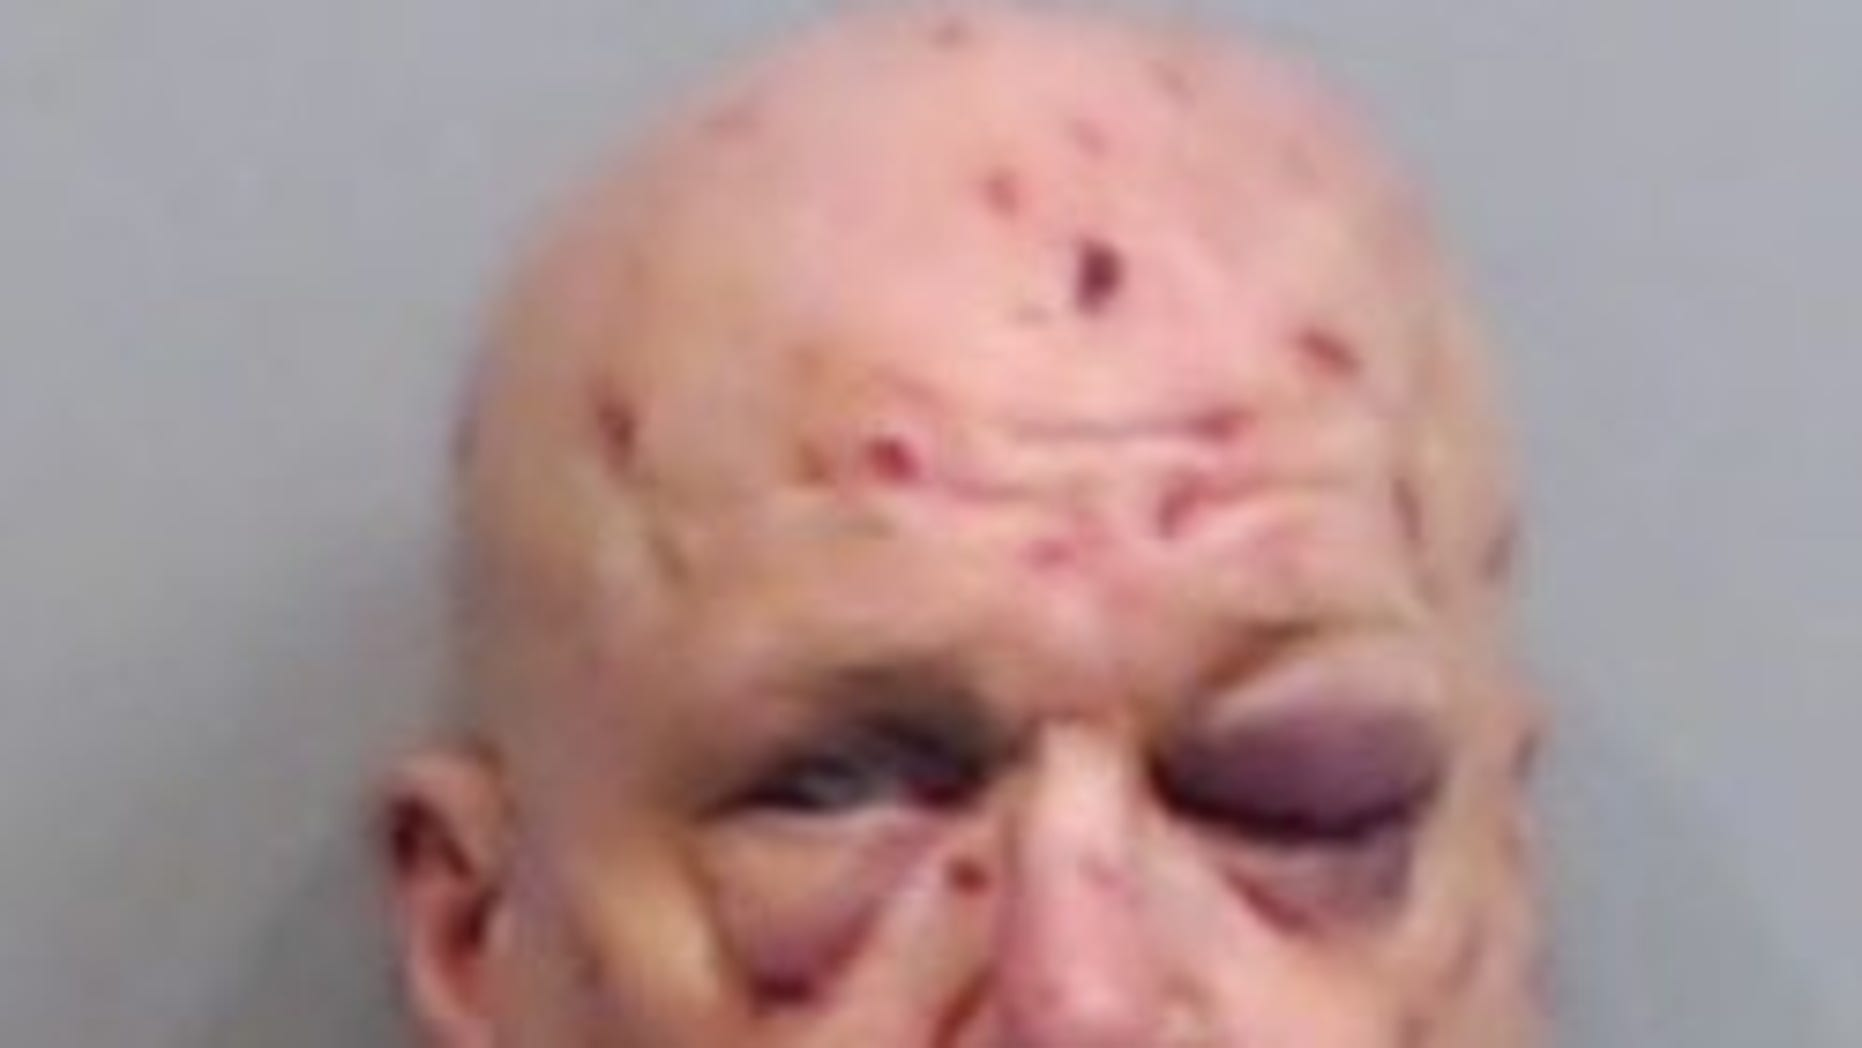 Rick Painter, 54, was arrested after he allegedly attacked his food delivery driver on Saturday.